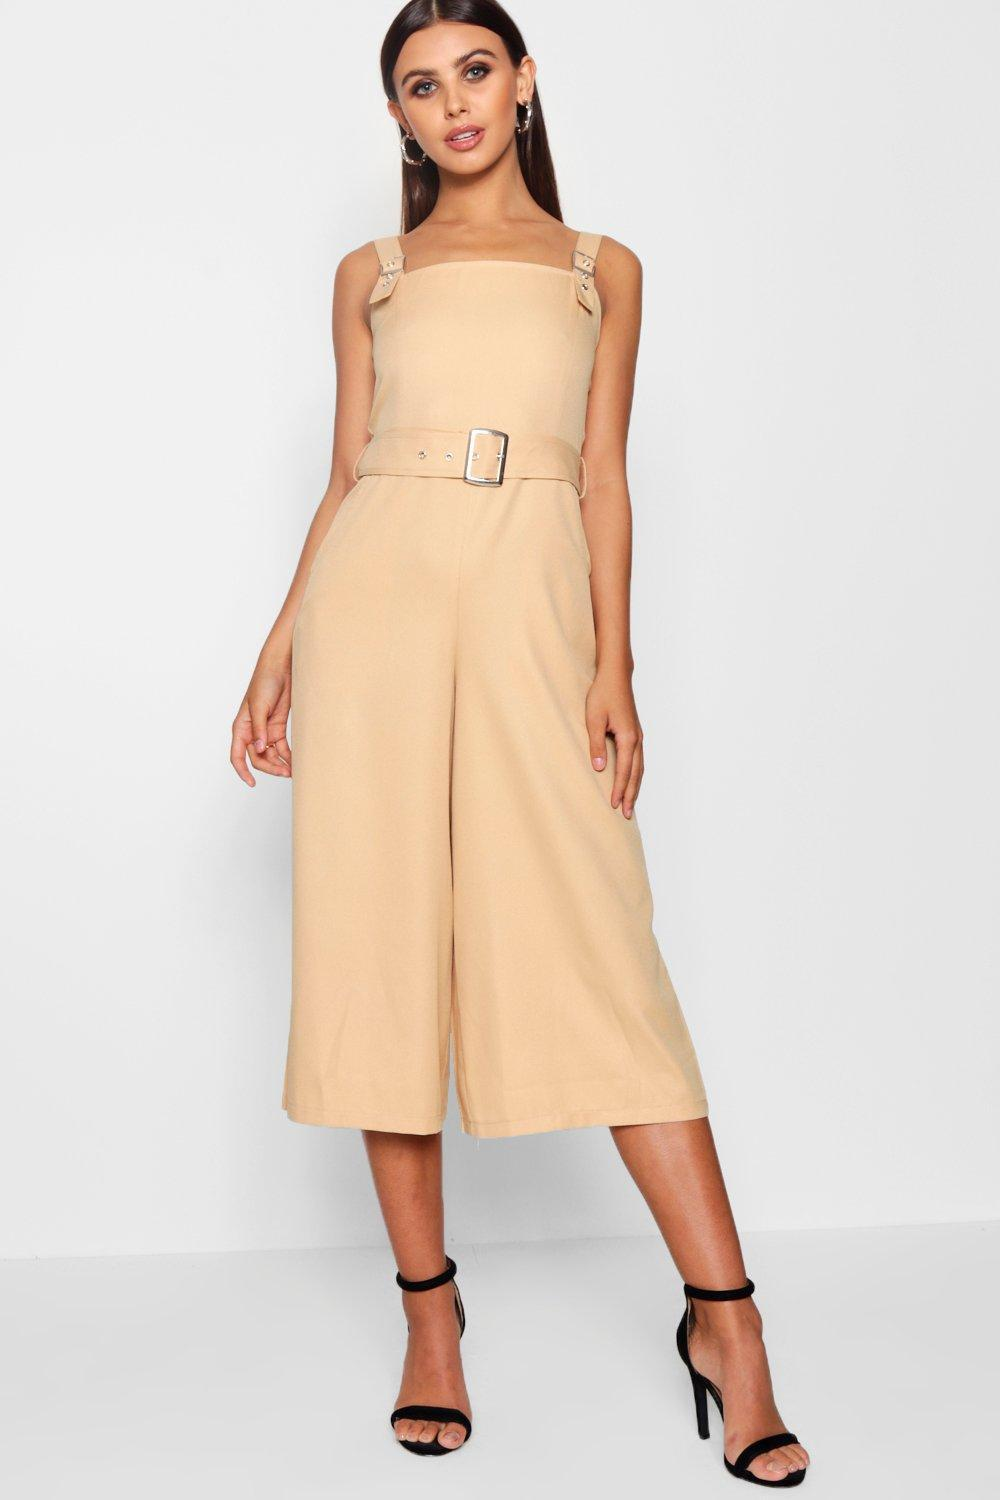 91521aee3a Lyst - Boohoo Petite Belted Square Neck Woven Jumpsuit in Natural